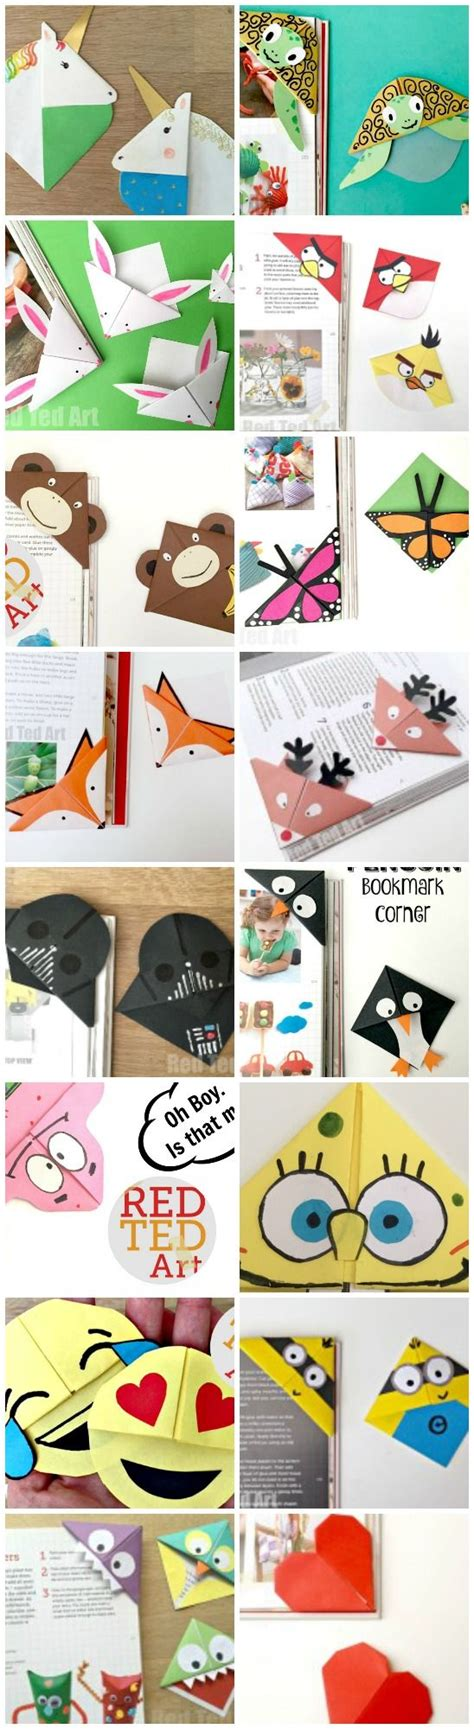 Paper Craft Bookmarks - corner bookmarks how to designs bookmark craft crafts